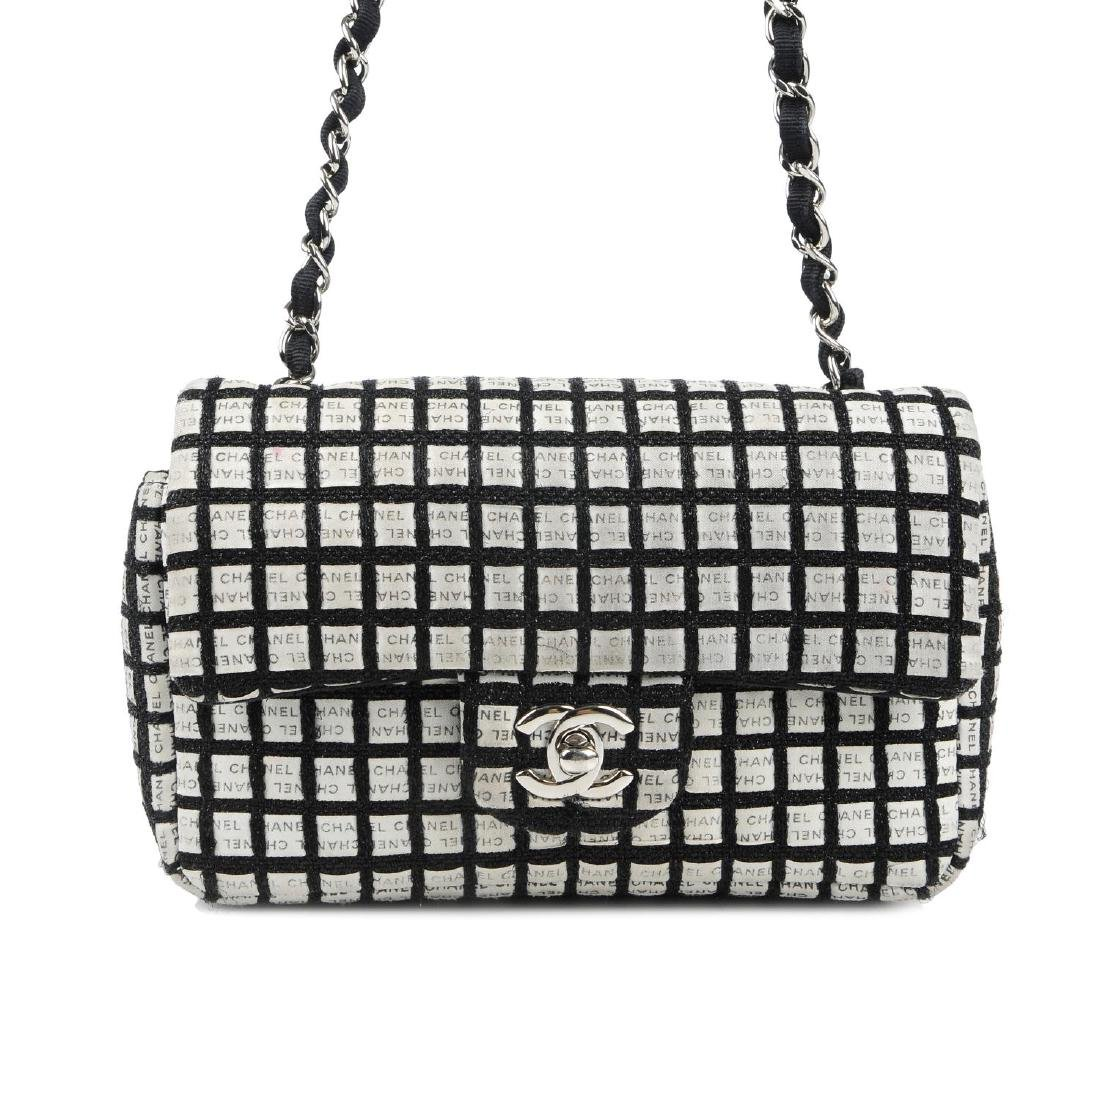 CHANEL - a black and white woven New Mini Flap handbag.